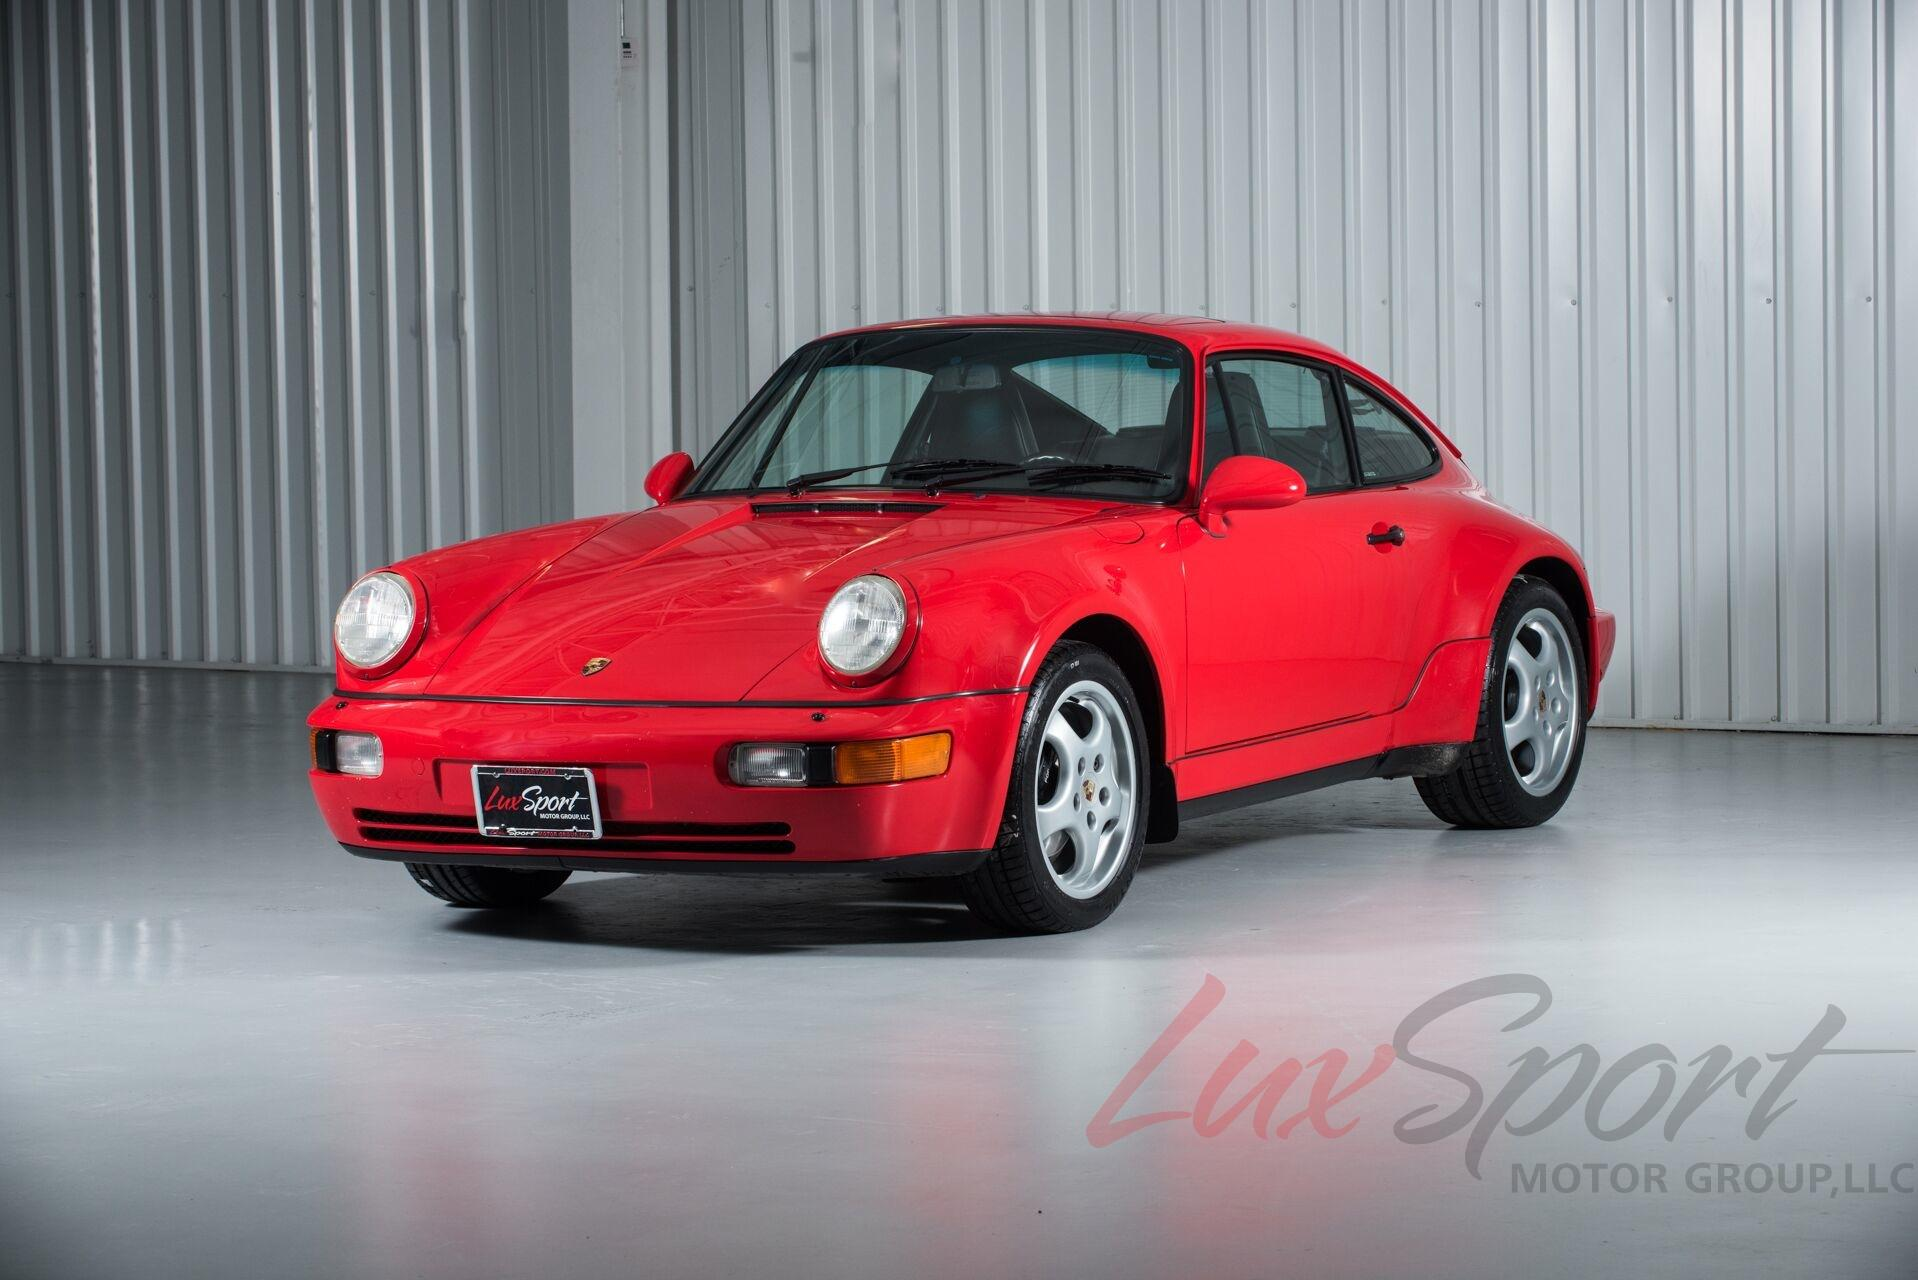 1994 Porsche 964 Carrera 4 Widebody Rare 1 Of 238 Built Red Black 62 000 Miles For Sale Porsche 911 1994 For Sale In New Hyde Park New York United States